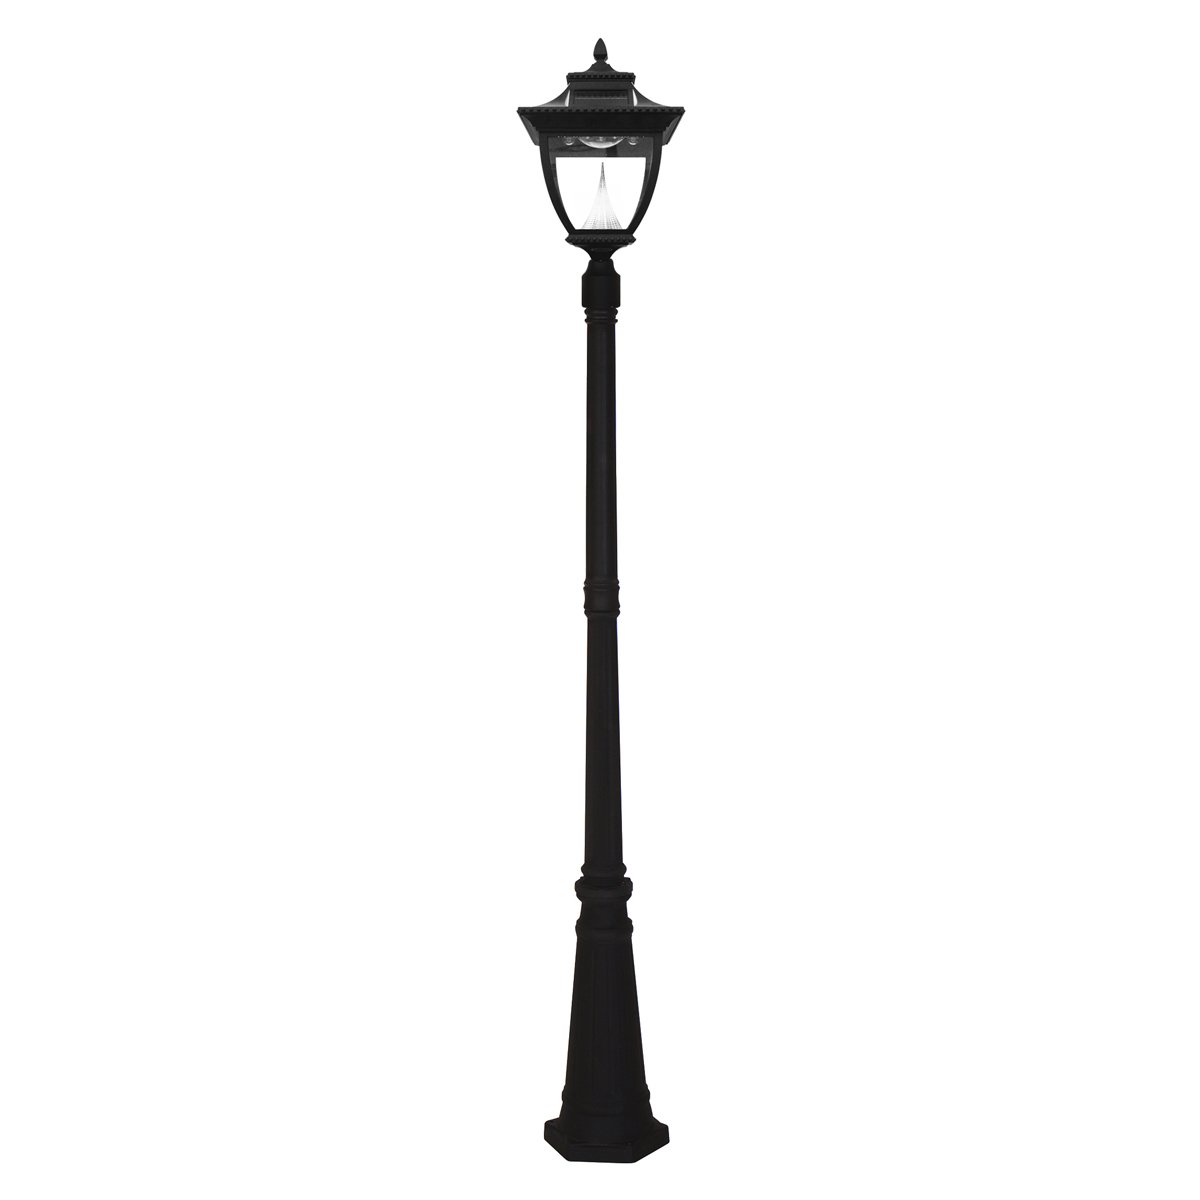 Gama Sonic GS-104S Pagoda Lamp Post Outdoor Solar Light Fixture and Pole